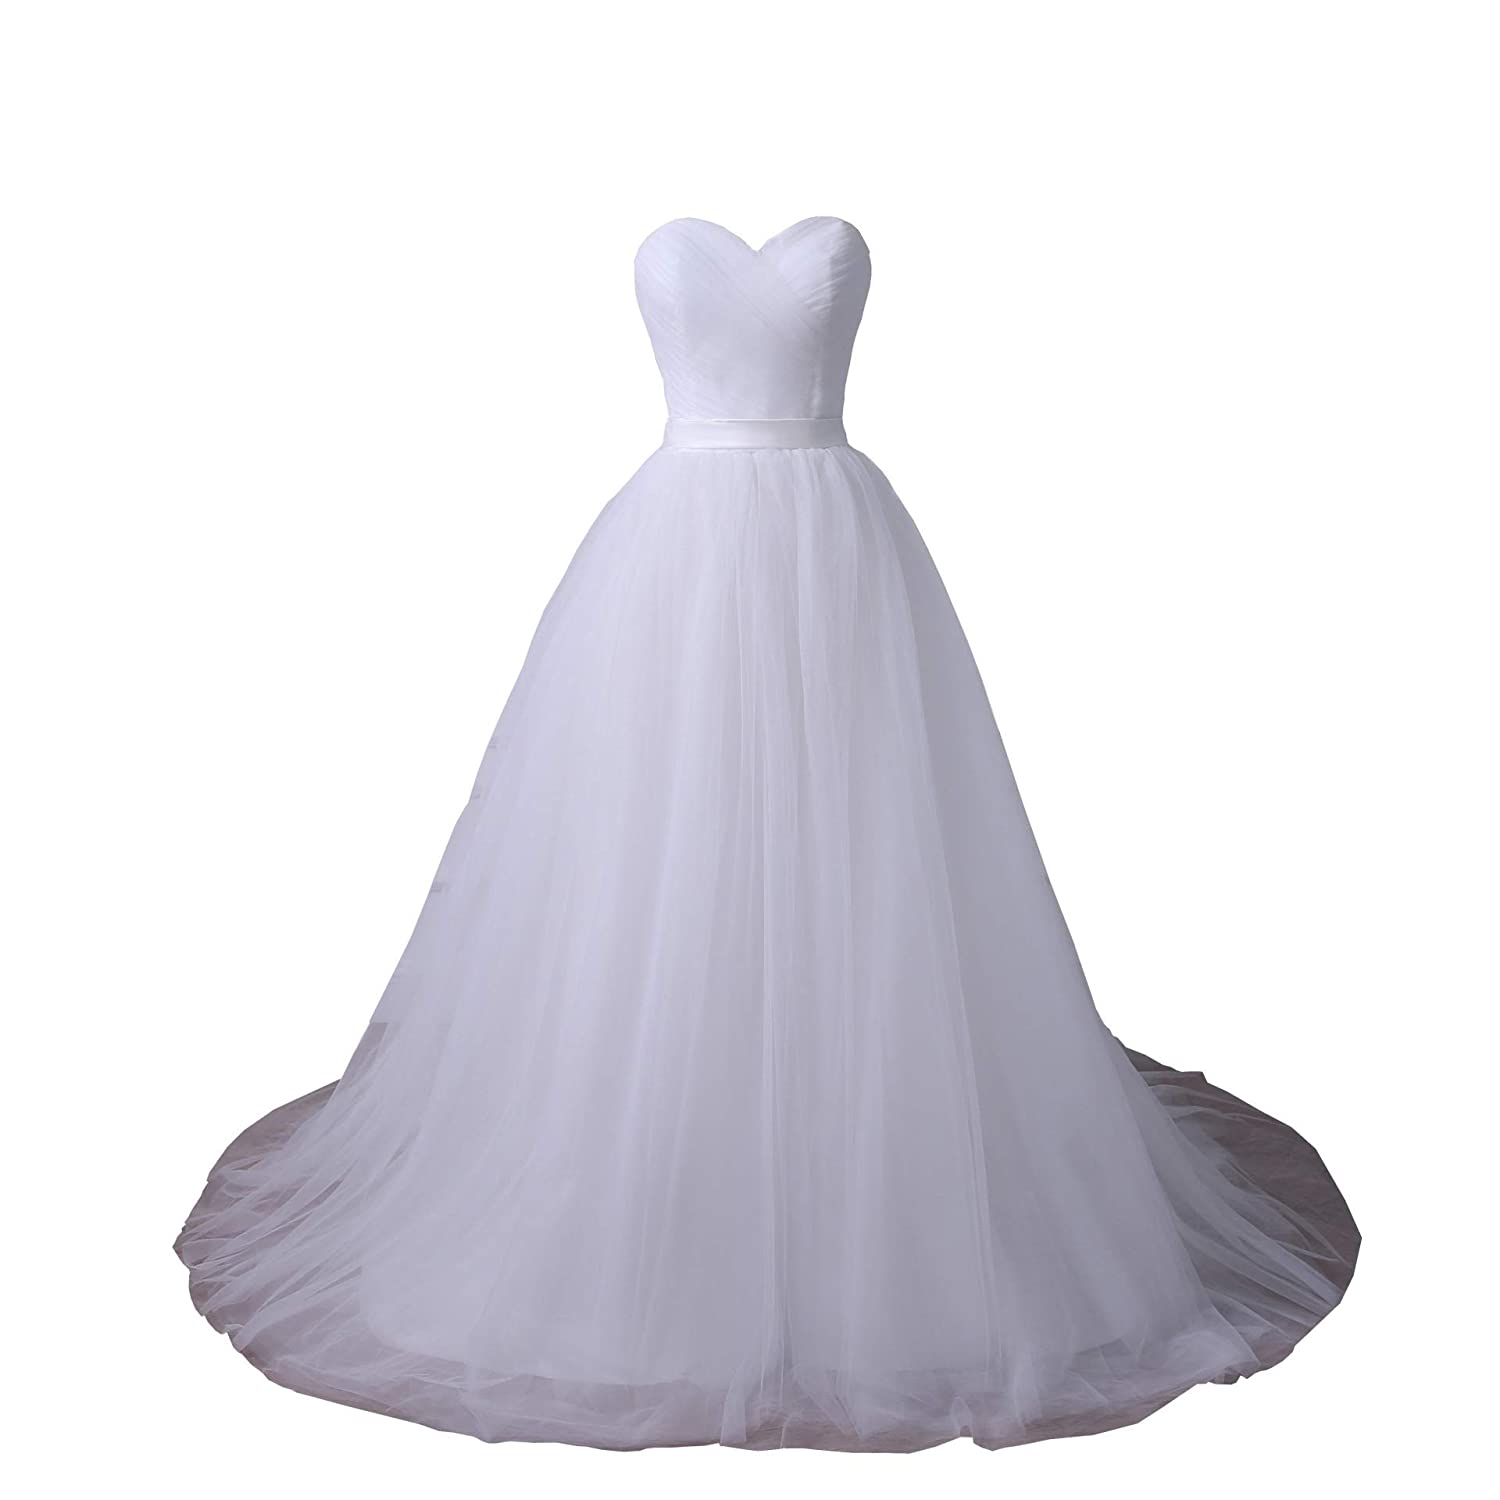 93f97ce0eac YIPEISHA Plus Size Wedding Dresses Sweetheart Sleeveless Corset Bridal Gown  with Pleats at Amazon Women s Clothing store